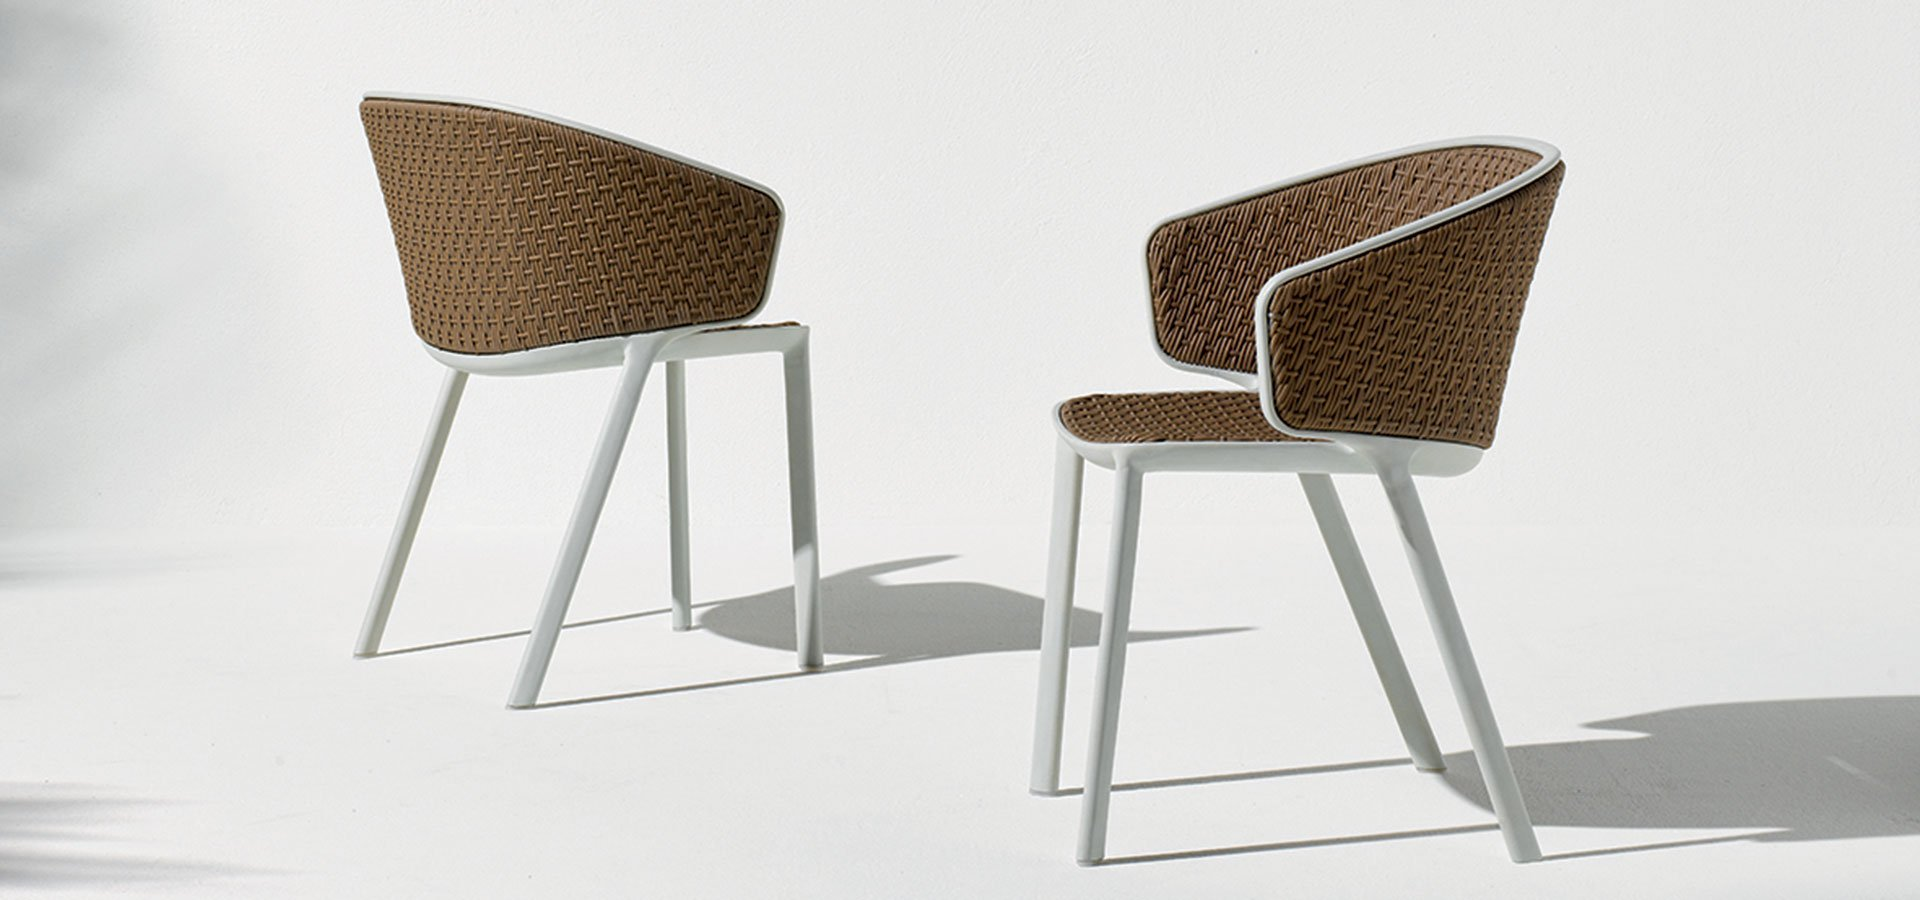 Pluvia Dining Chair from Ethimo, designed by Luca Nichetto